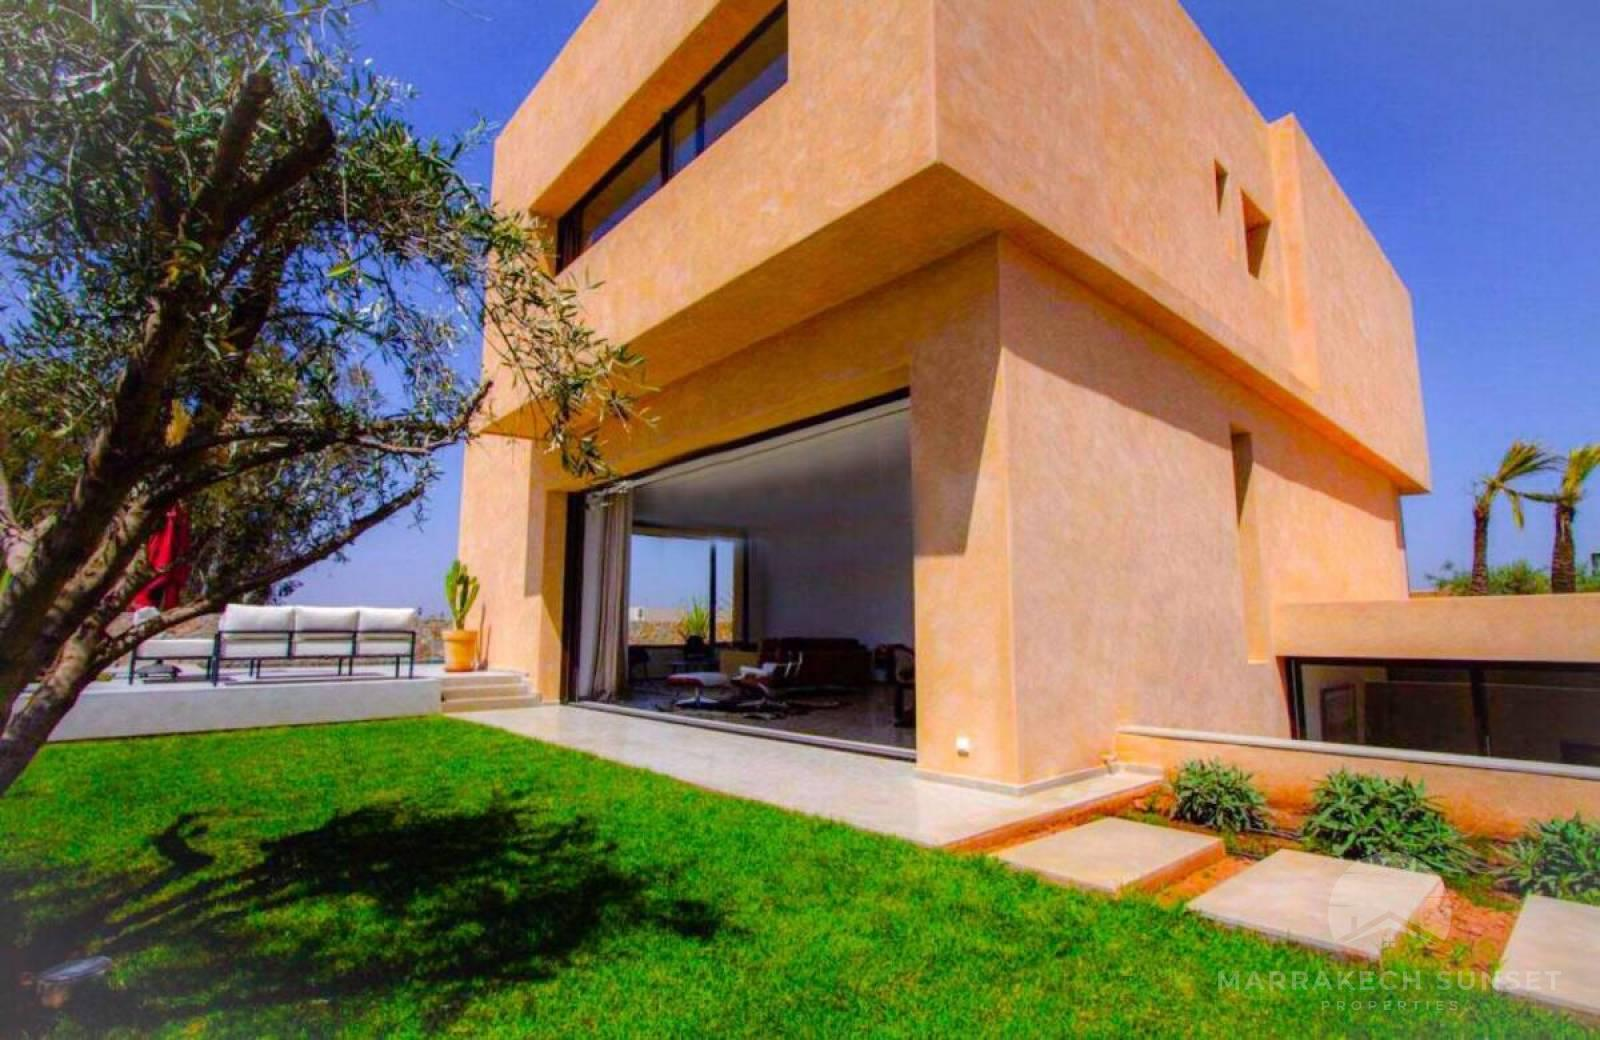 Modern Marrakech villa to Rent with pool in Amelkis golf club